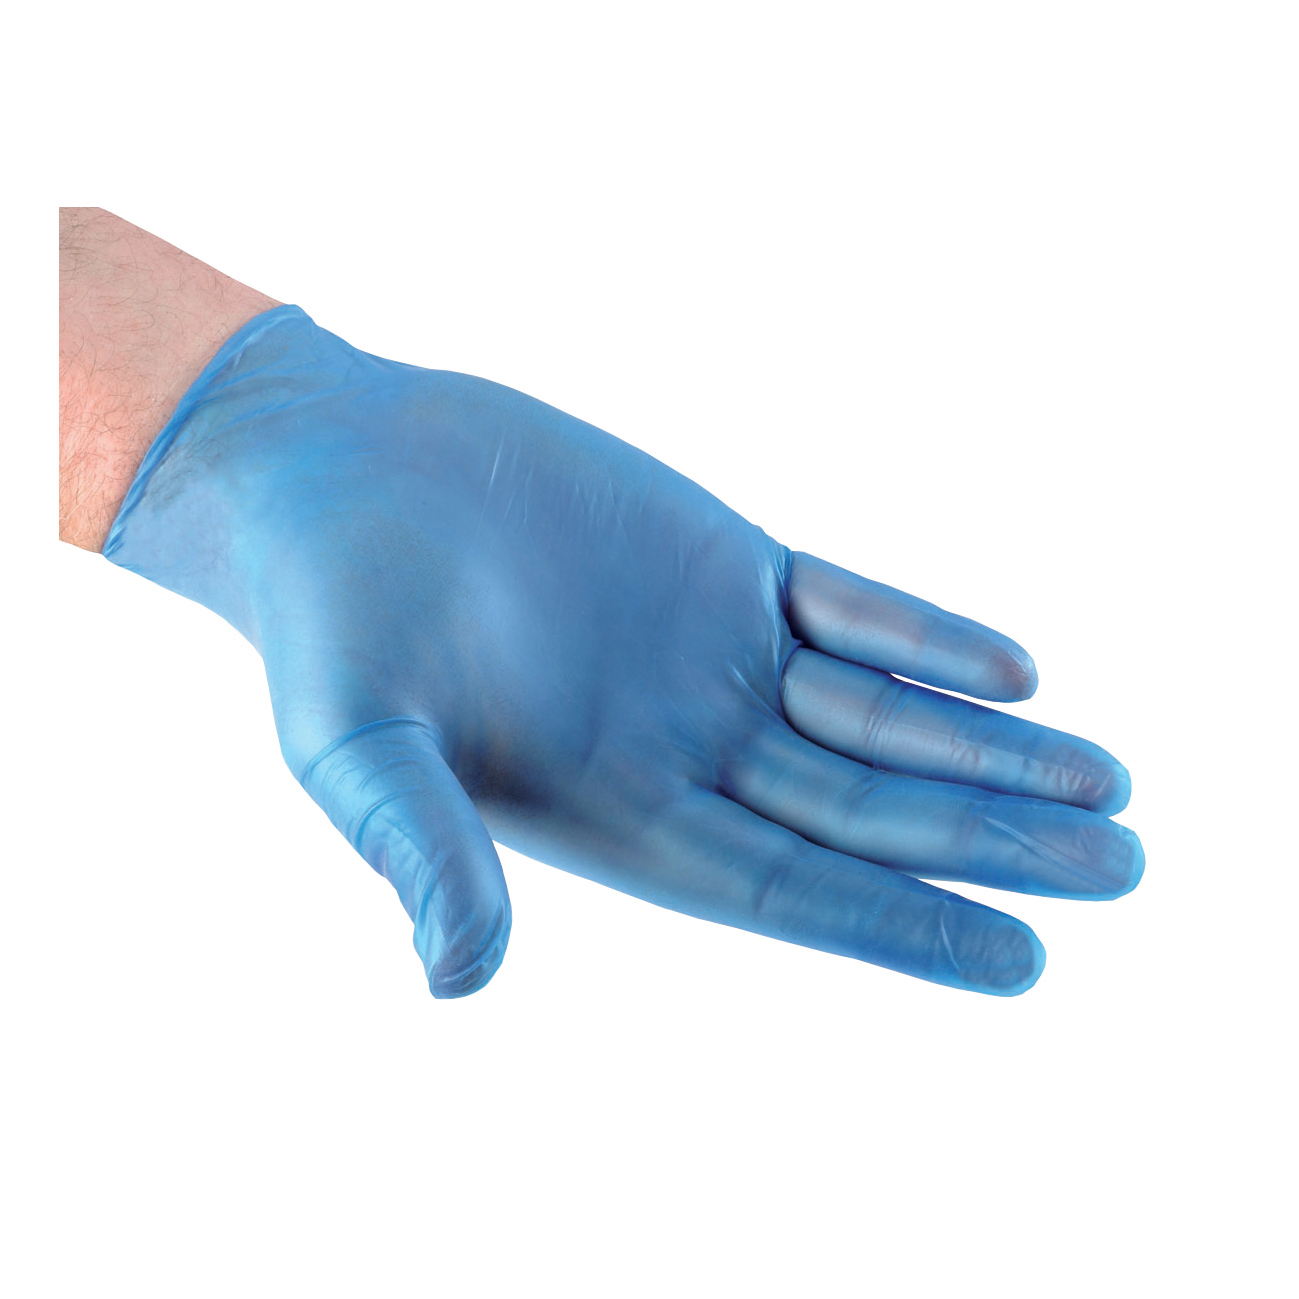 Disposable Gloves Vinyl Powder Free Large Blue [Pack 100]